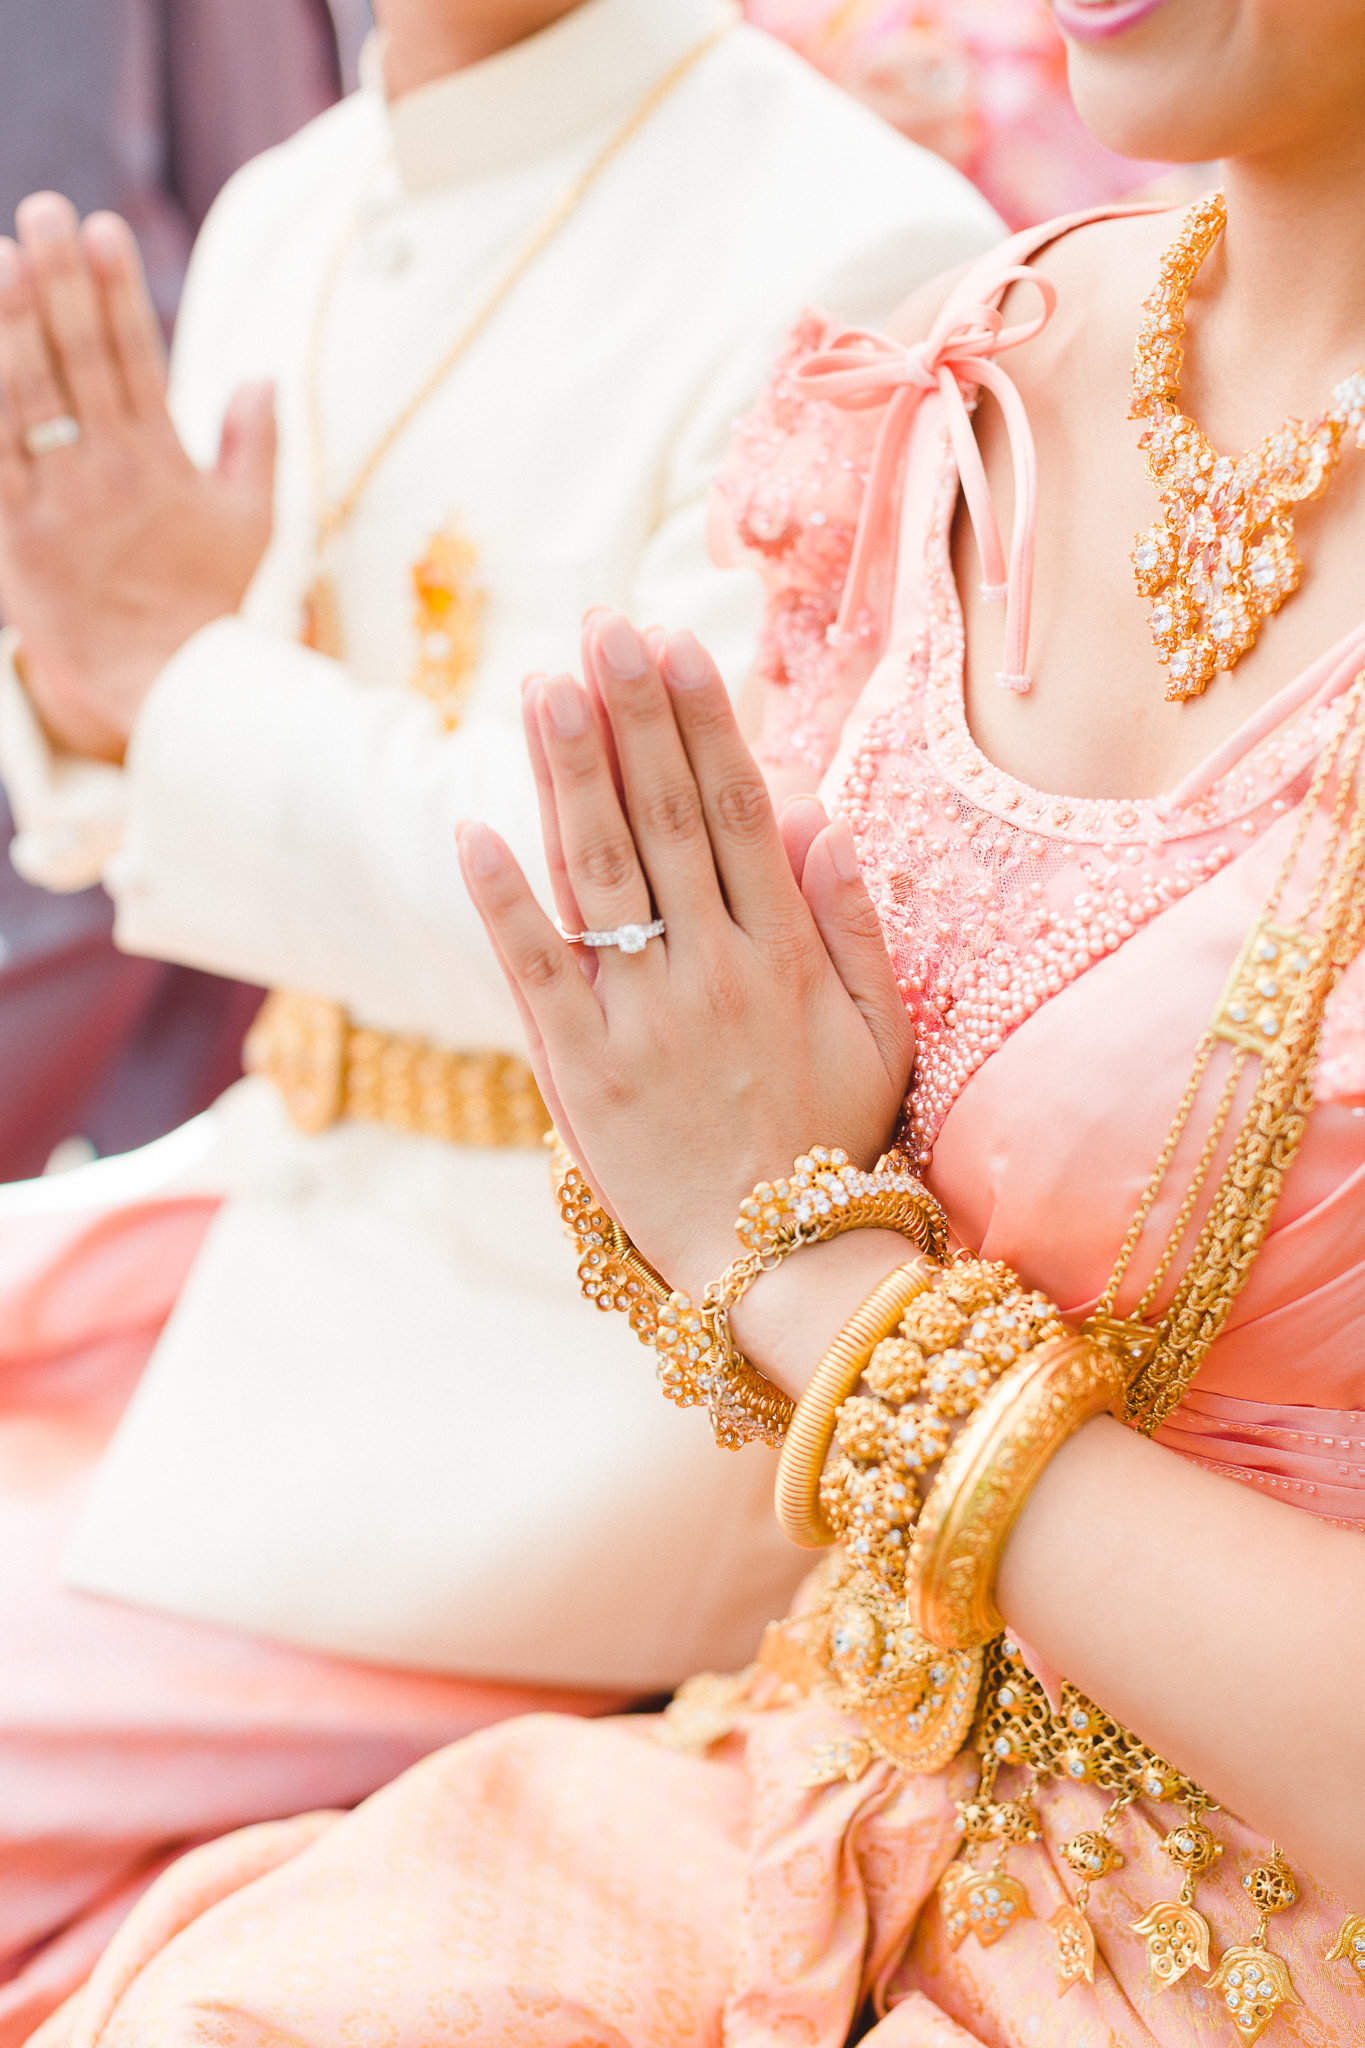 photographe-montreal-mariage-culturel-traditionnel-cambodgien-lisa-renault-photographie-traditional-cultural-cambodian-wedding-45